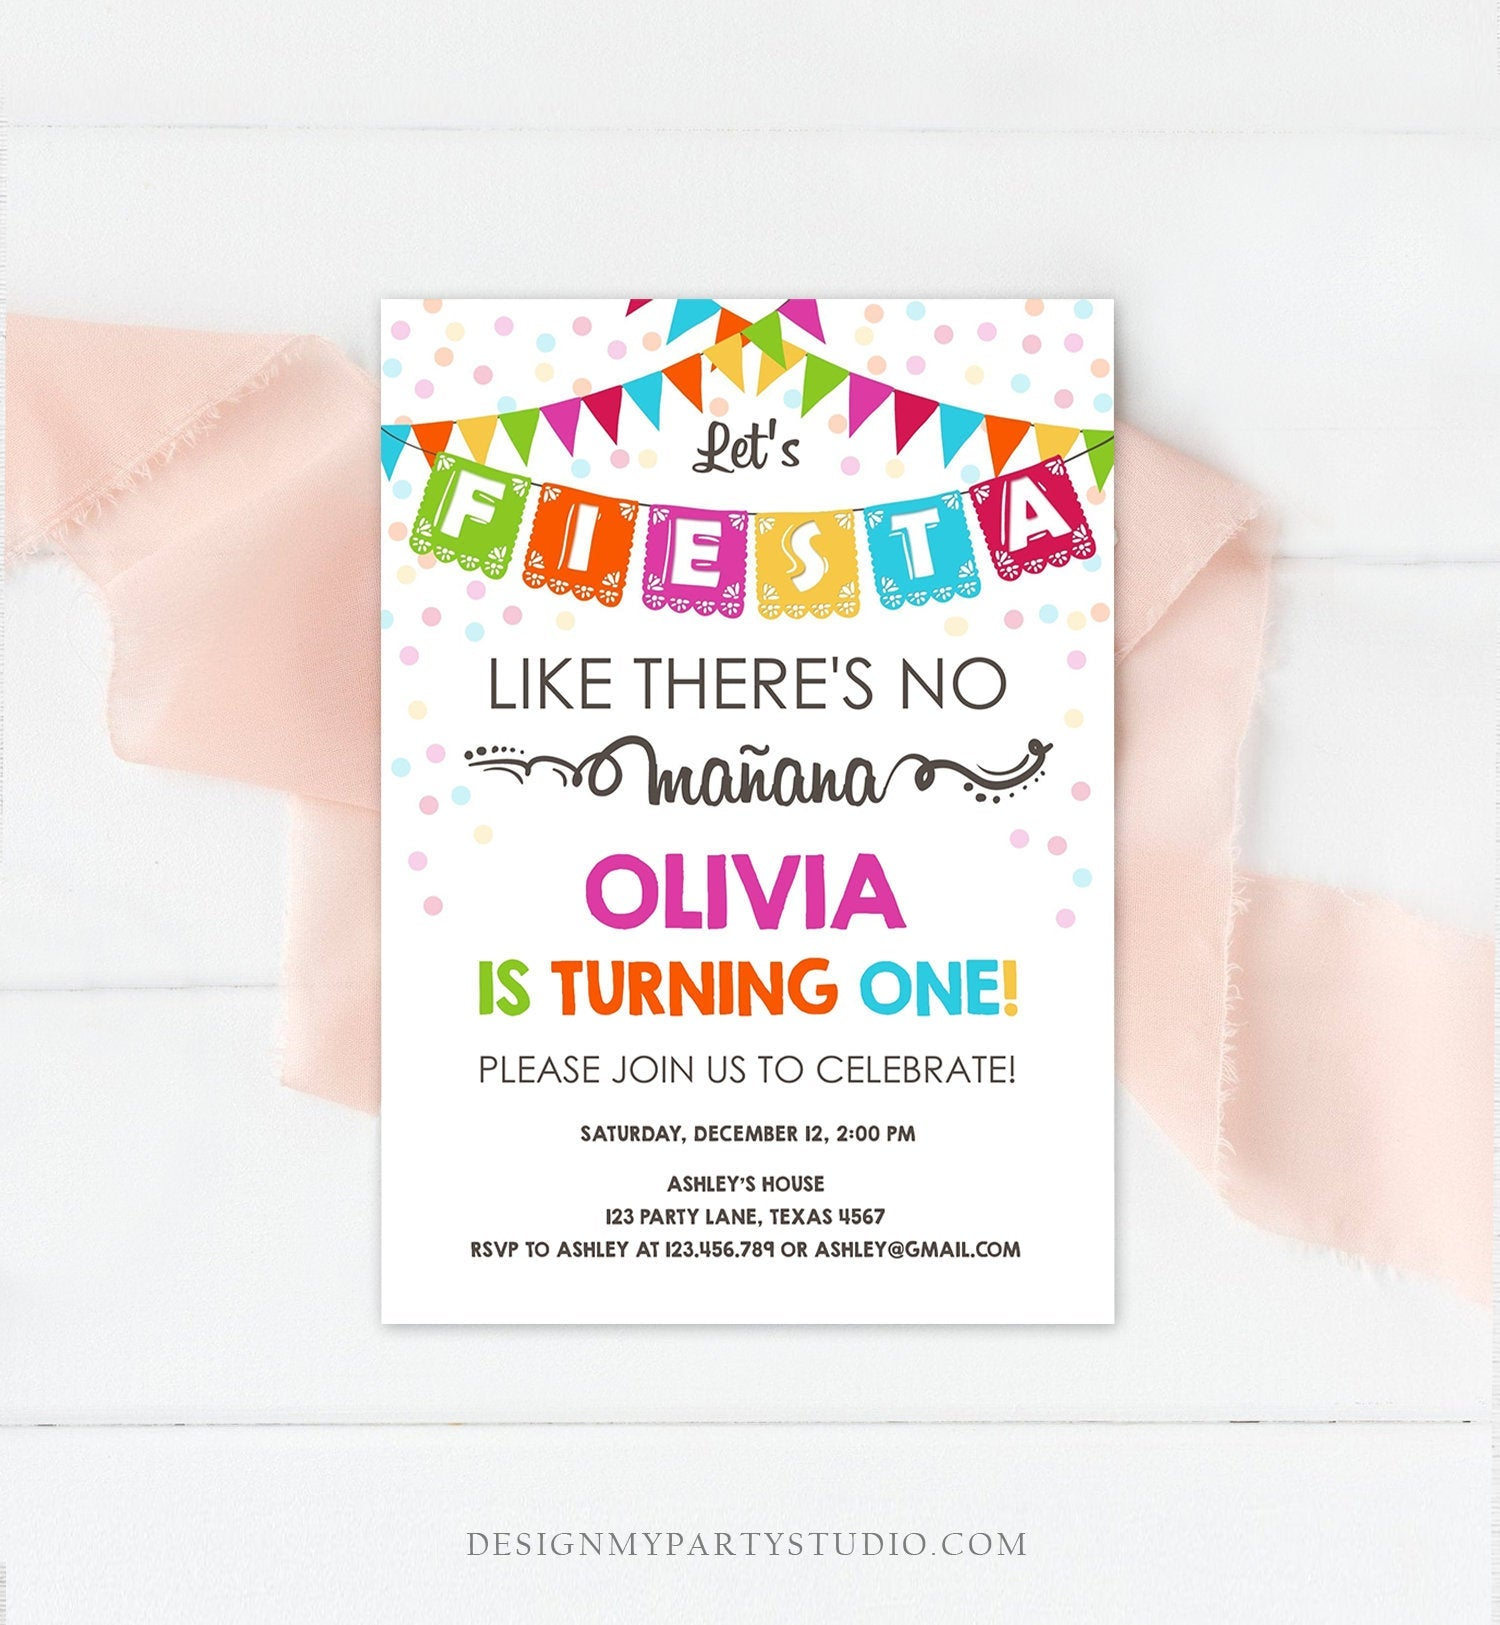 Editable Fiesta Birthday Invitation Let's Fiesta Like There is no Manana Cactus Mexican No Time to Siesta First Birthday Corjl Template 0045